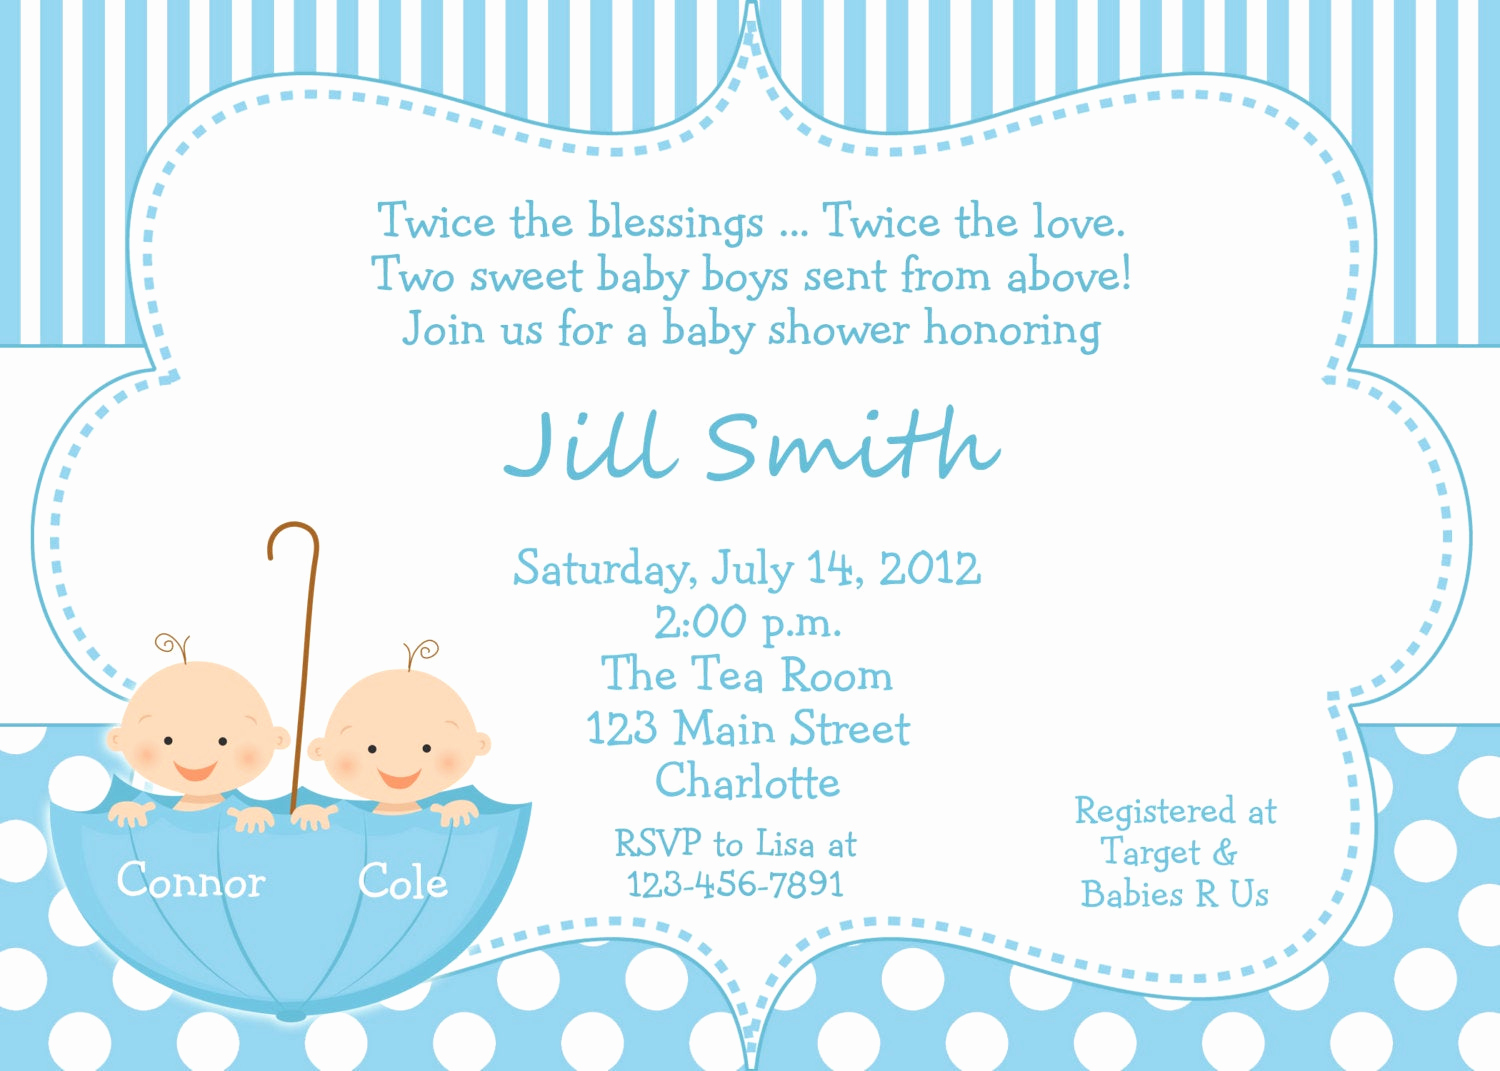 Baby Boy Shower Invitation Wording Inspirational Twin Baby Boys Shower Invitation Twins Shower Blue Polka